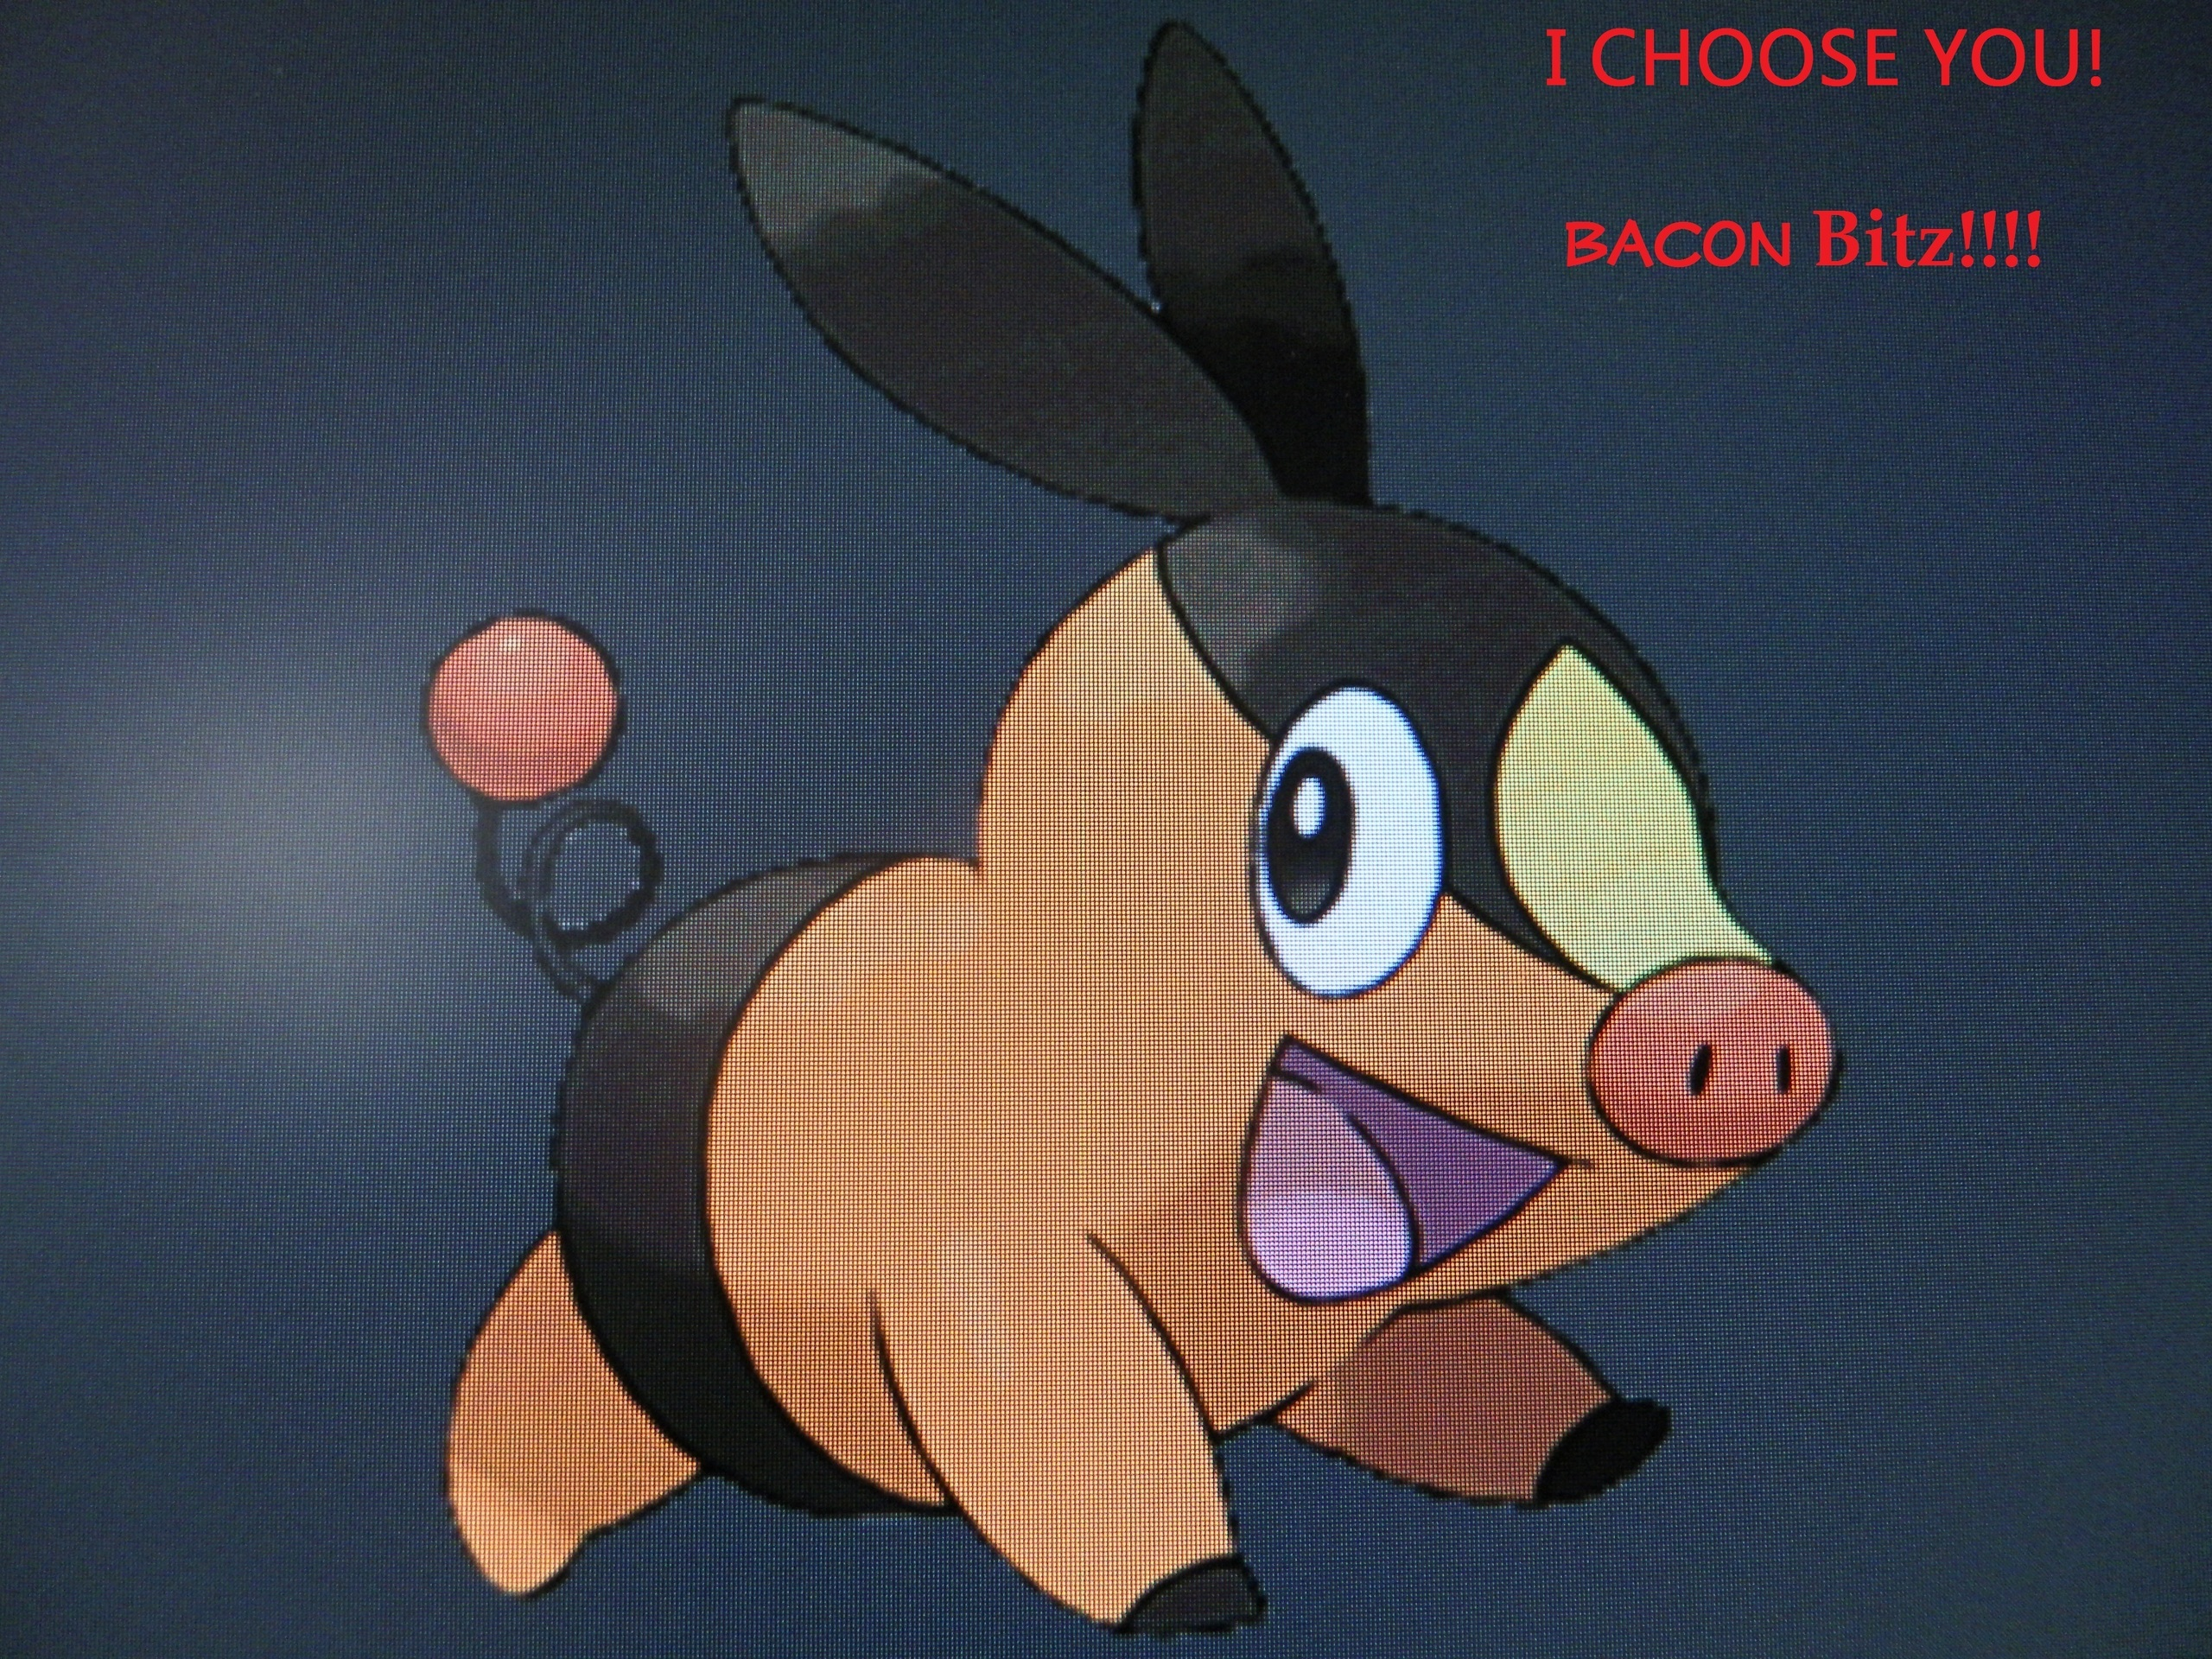 pokémon images i choose you, bacon bitz! hd wallpaper and background